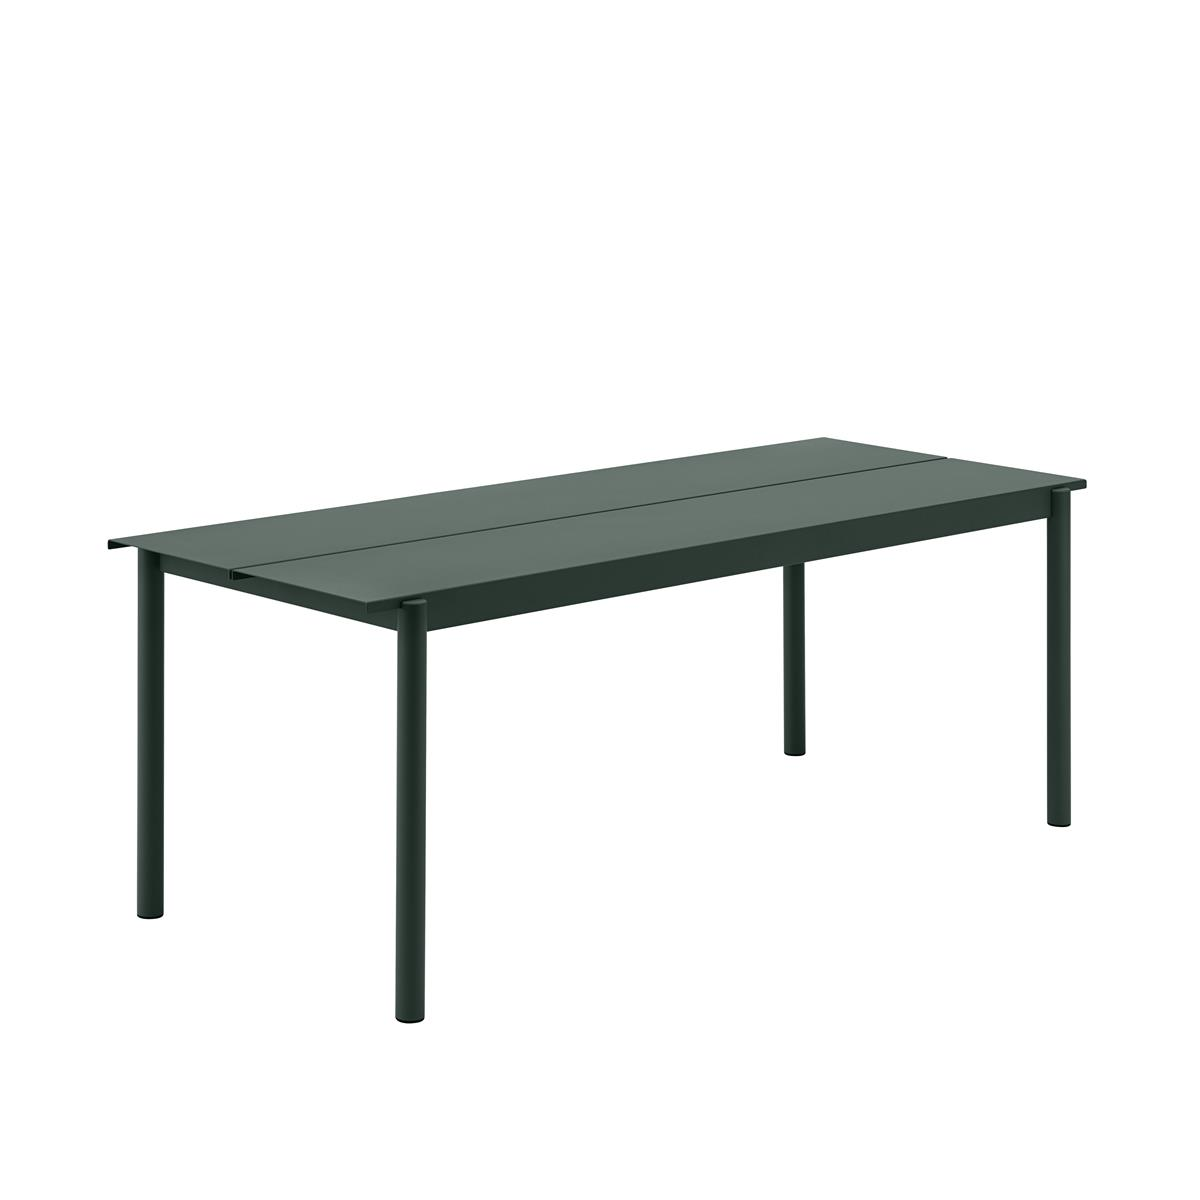 Linear Steel Table 200 x 75 x H73,5 - Dark Green